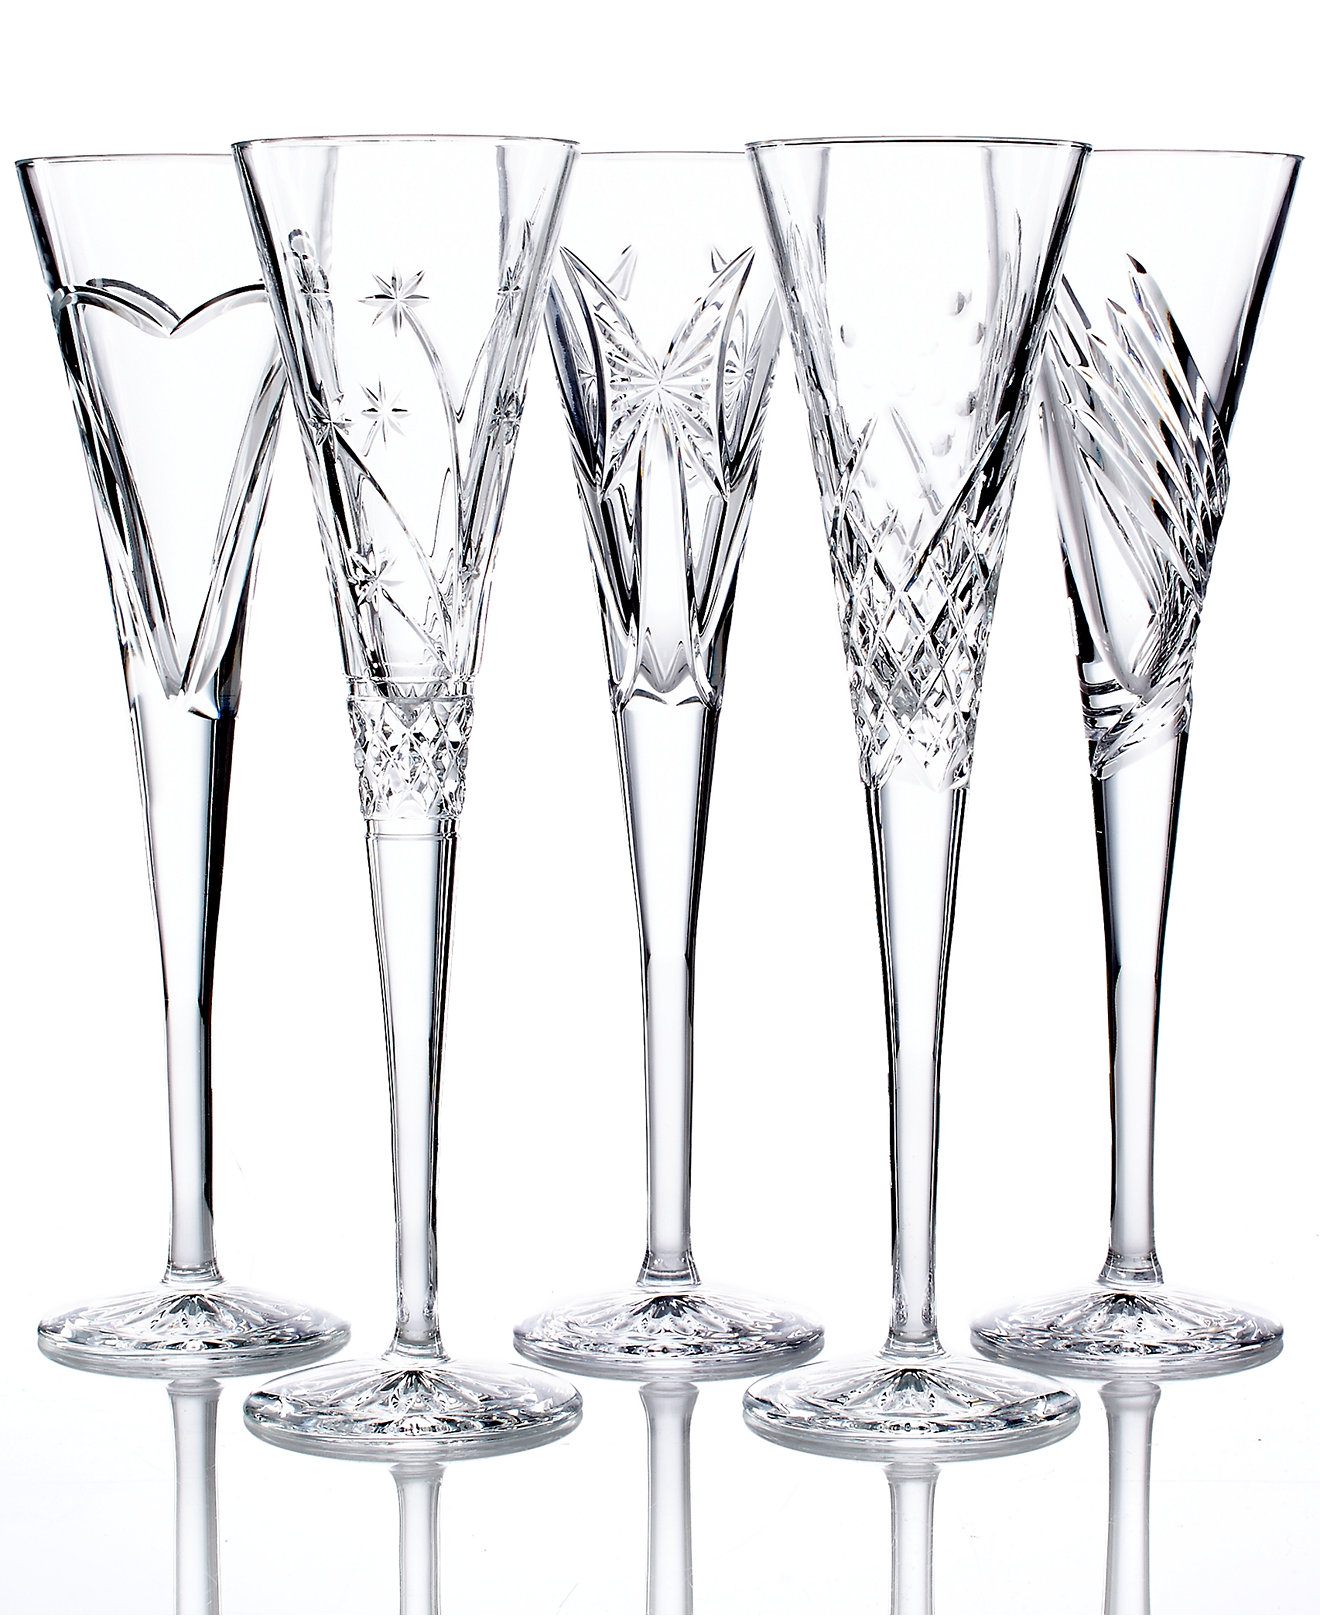 Chic Waterford Crystal Patterns For Dining Sets Ideas With Waterford Crystal Glass Patterns